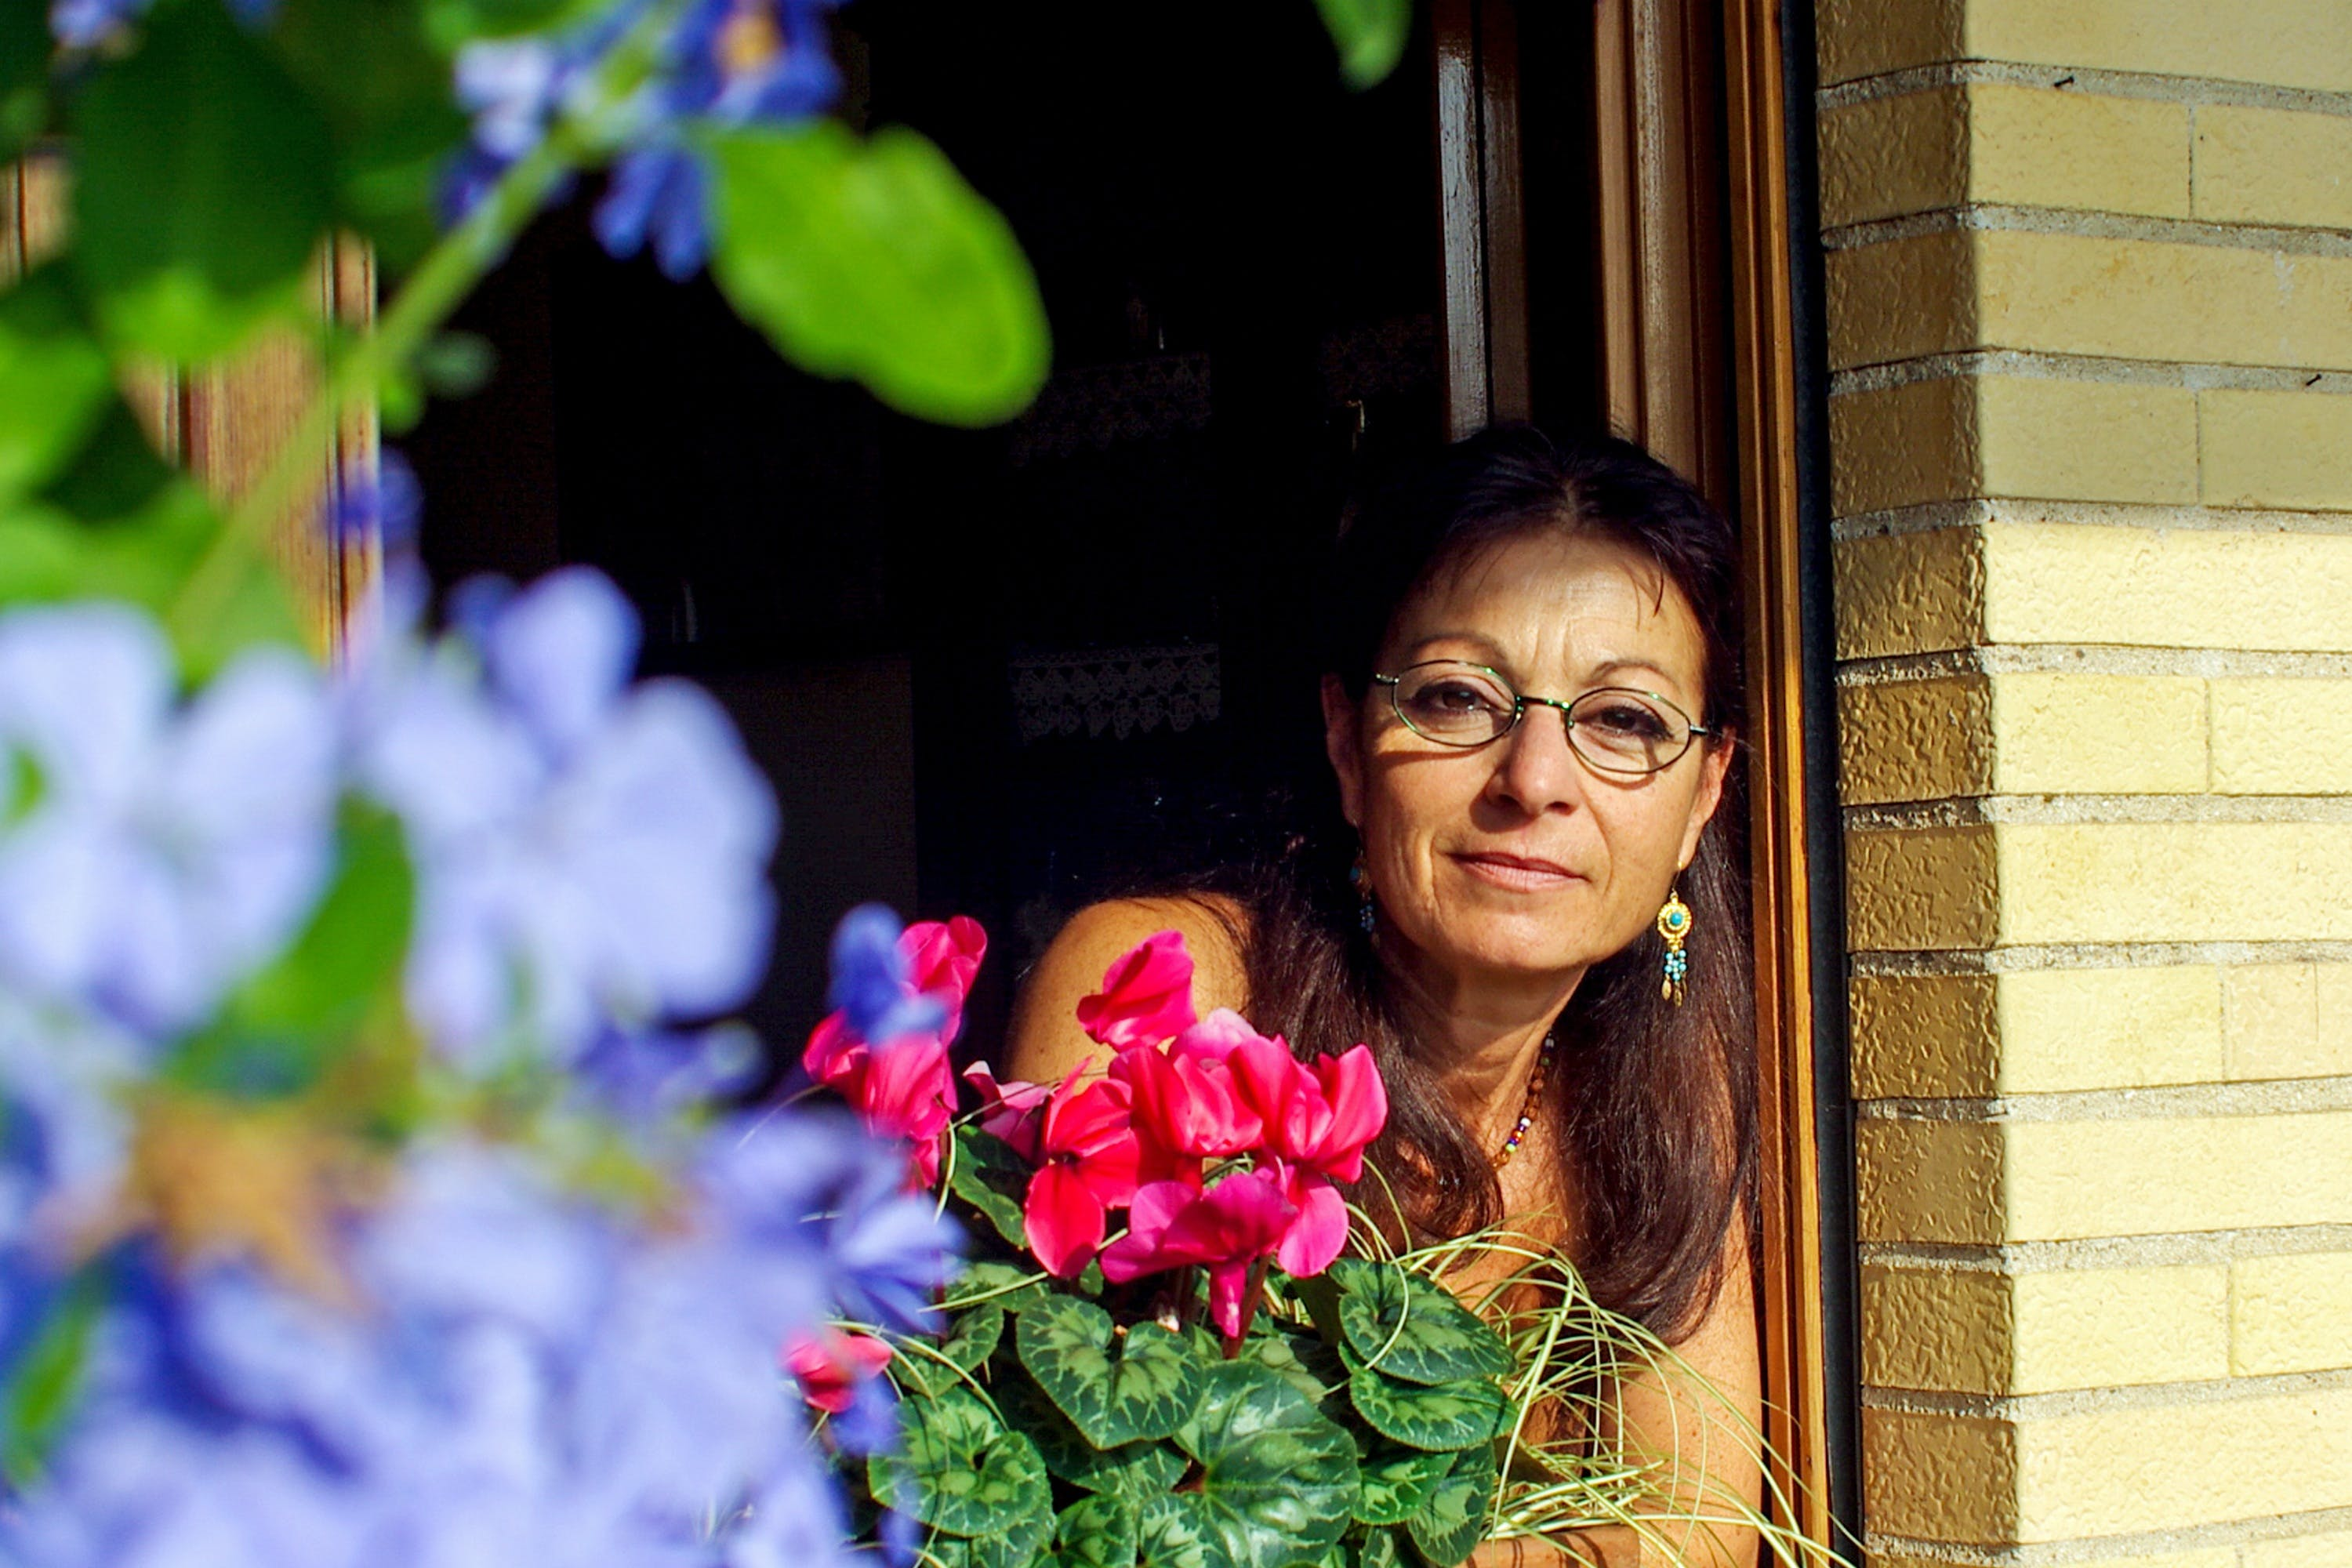 Woman on Window Near Pink Cyclamen and Purple Leadwort Flowers